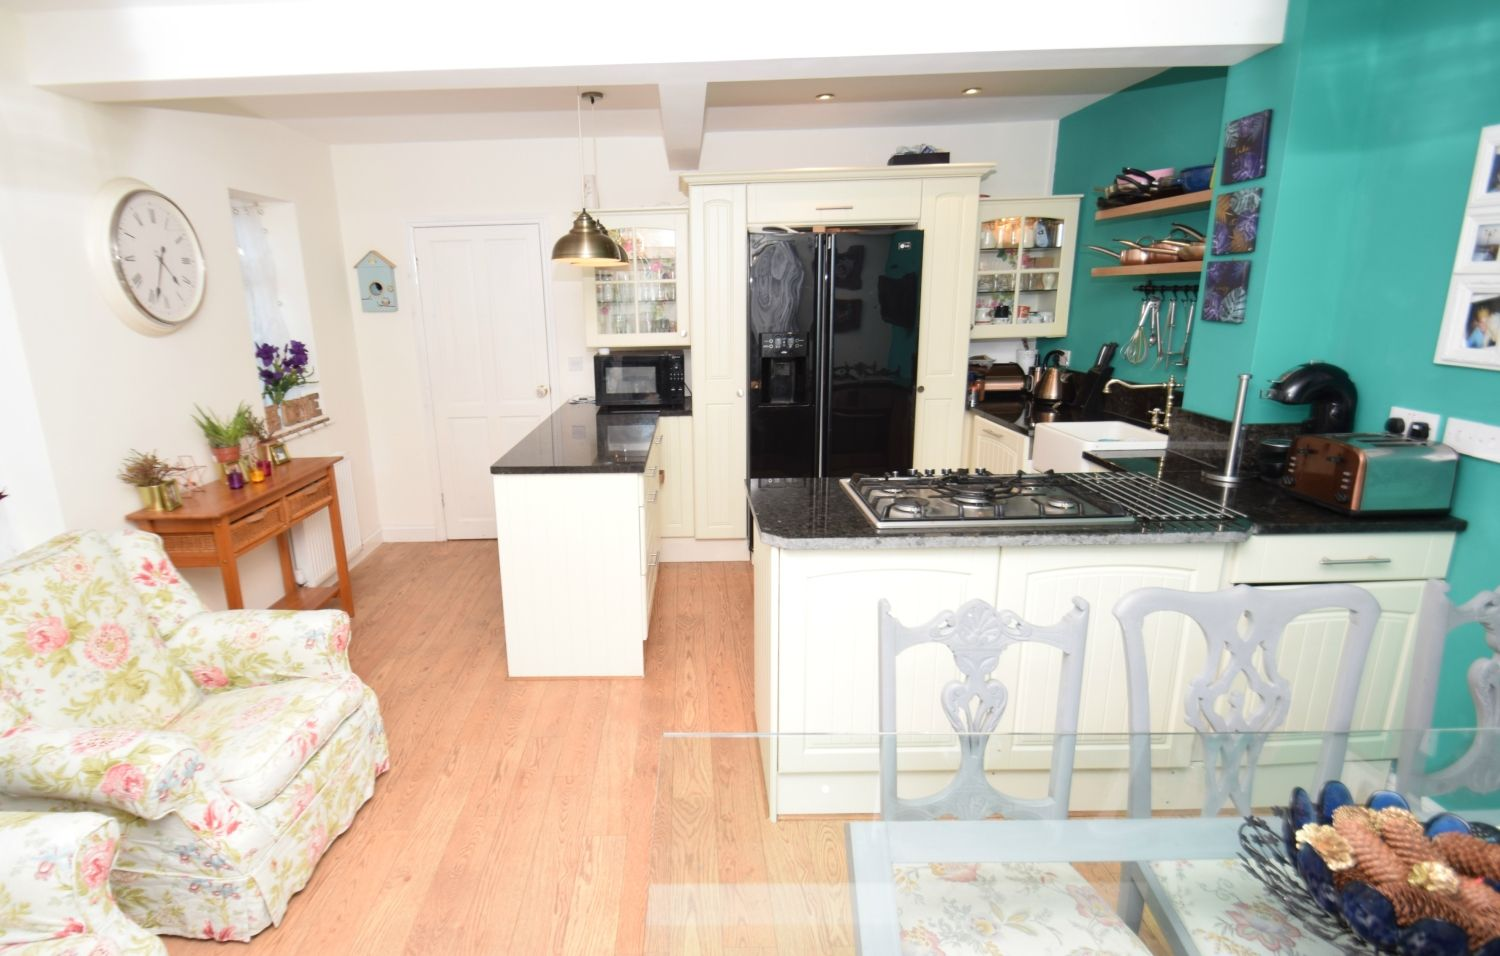 4 bed semi-detached for sale in Upland Grove, Bromsgrove, B61 8